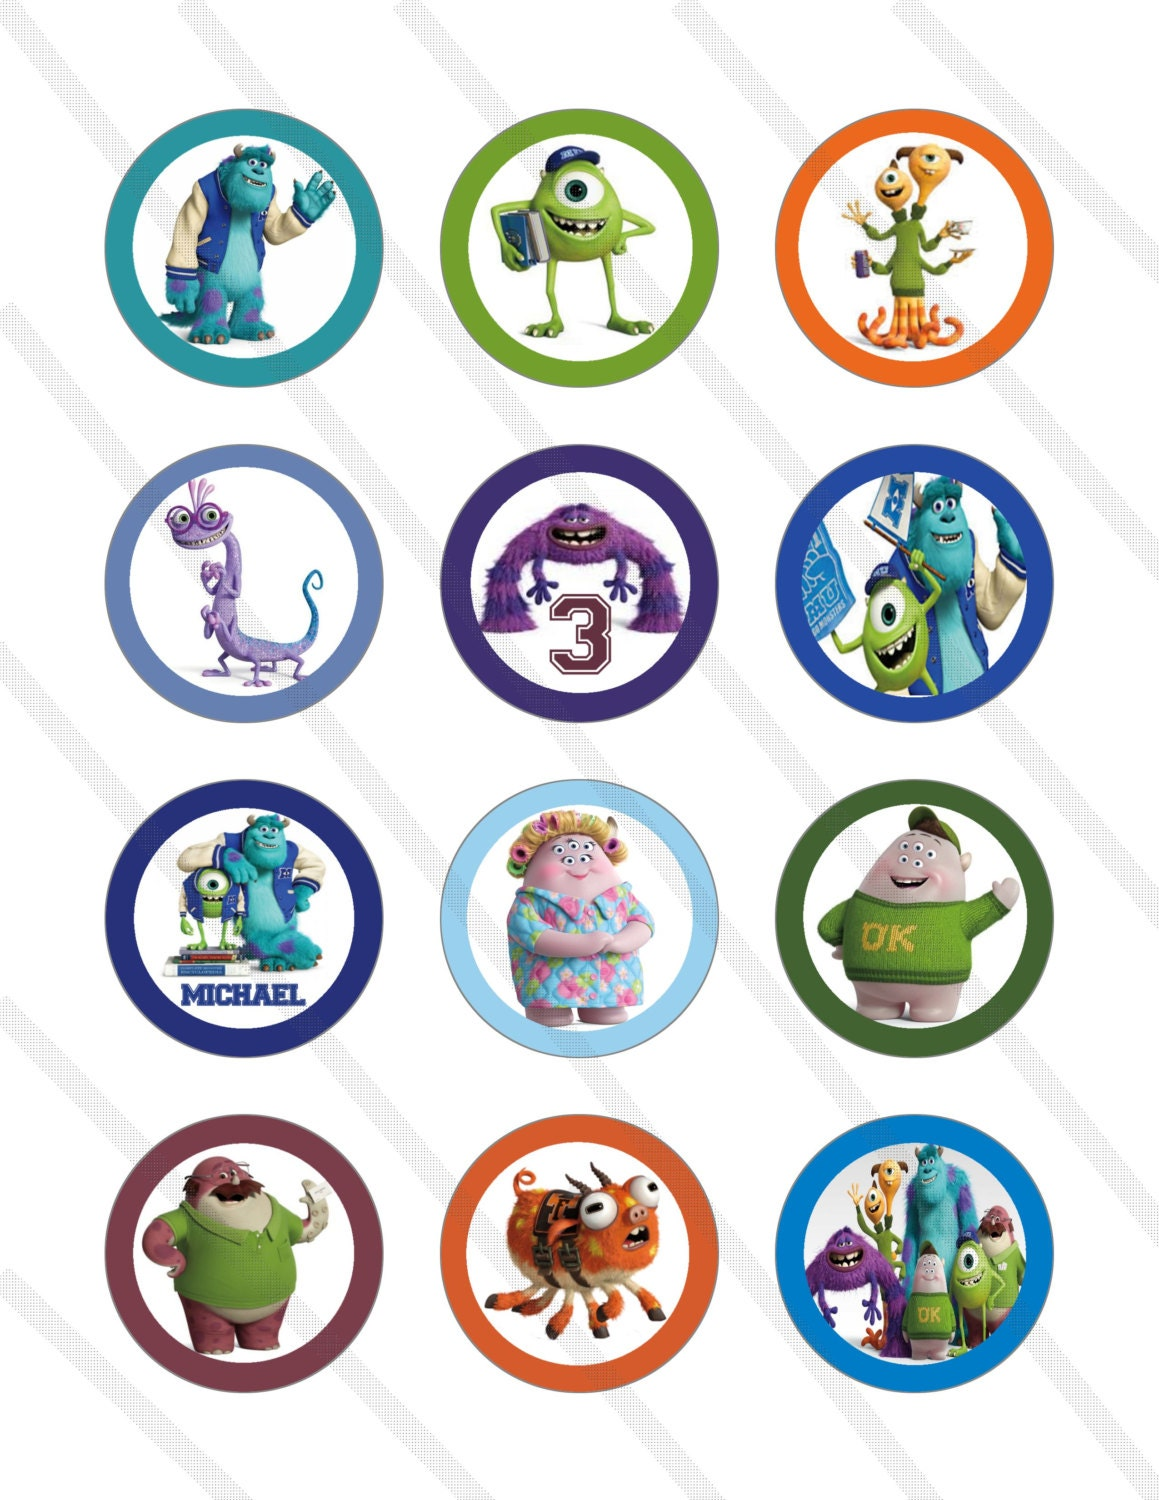 Monsters Inc Birthday Invitations is great invitations template